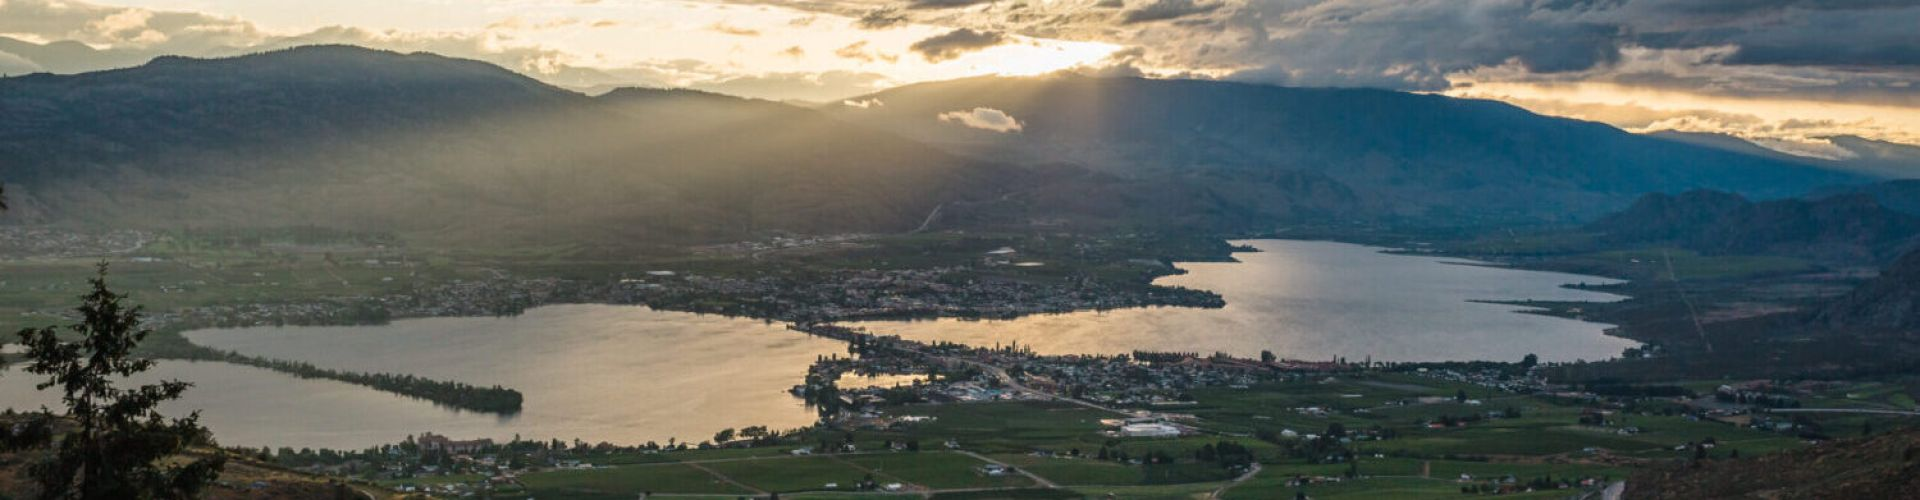 Anarchist Mountain Viewpoint in Osoyoos